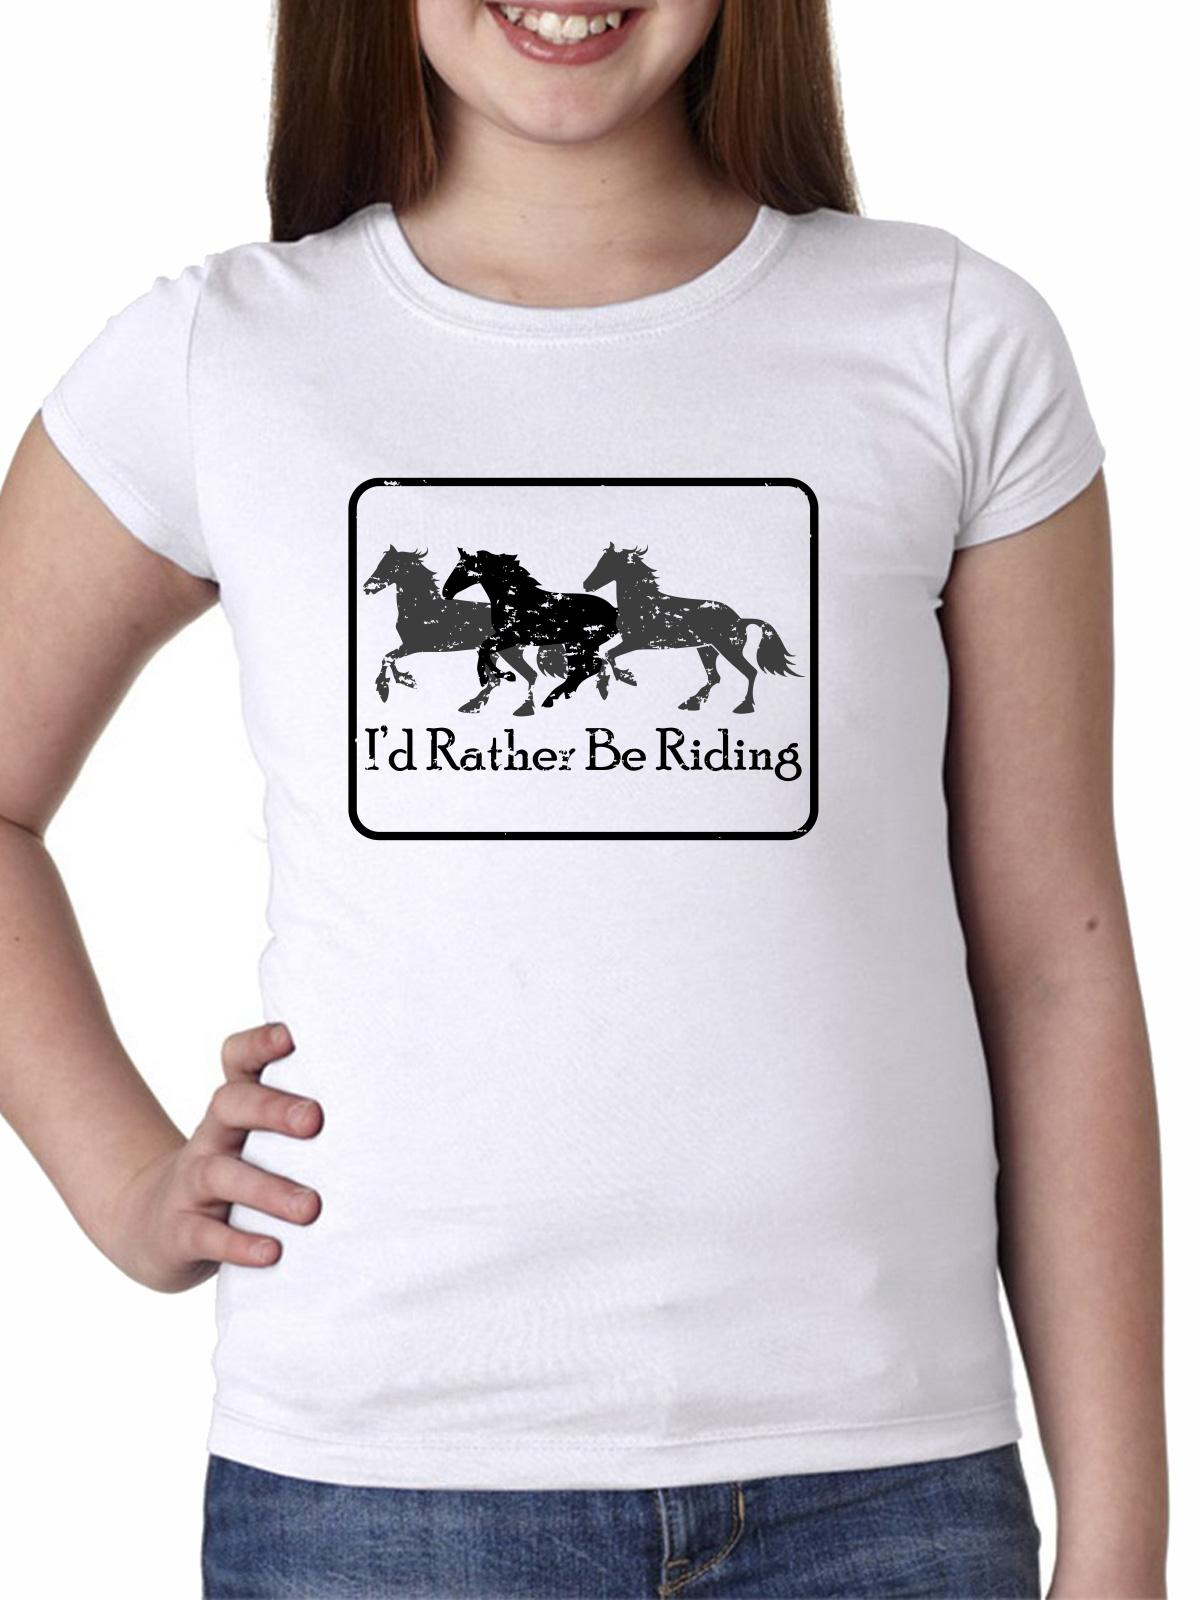 I'd Rather Be Riding - Equestrian Horse Riding Motto Girl's Cotton Youth T-Shirt